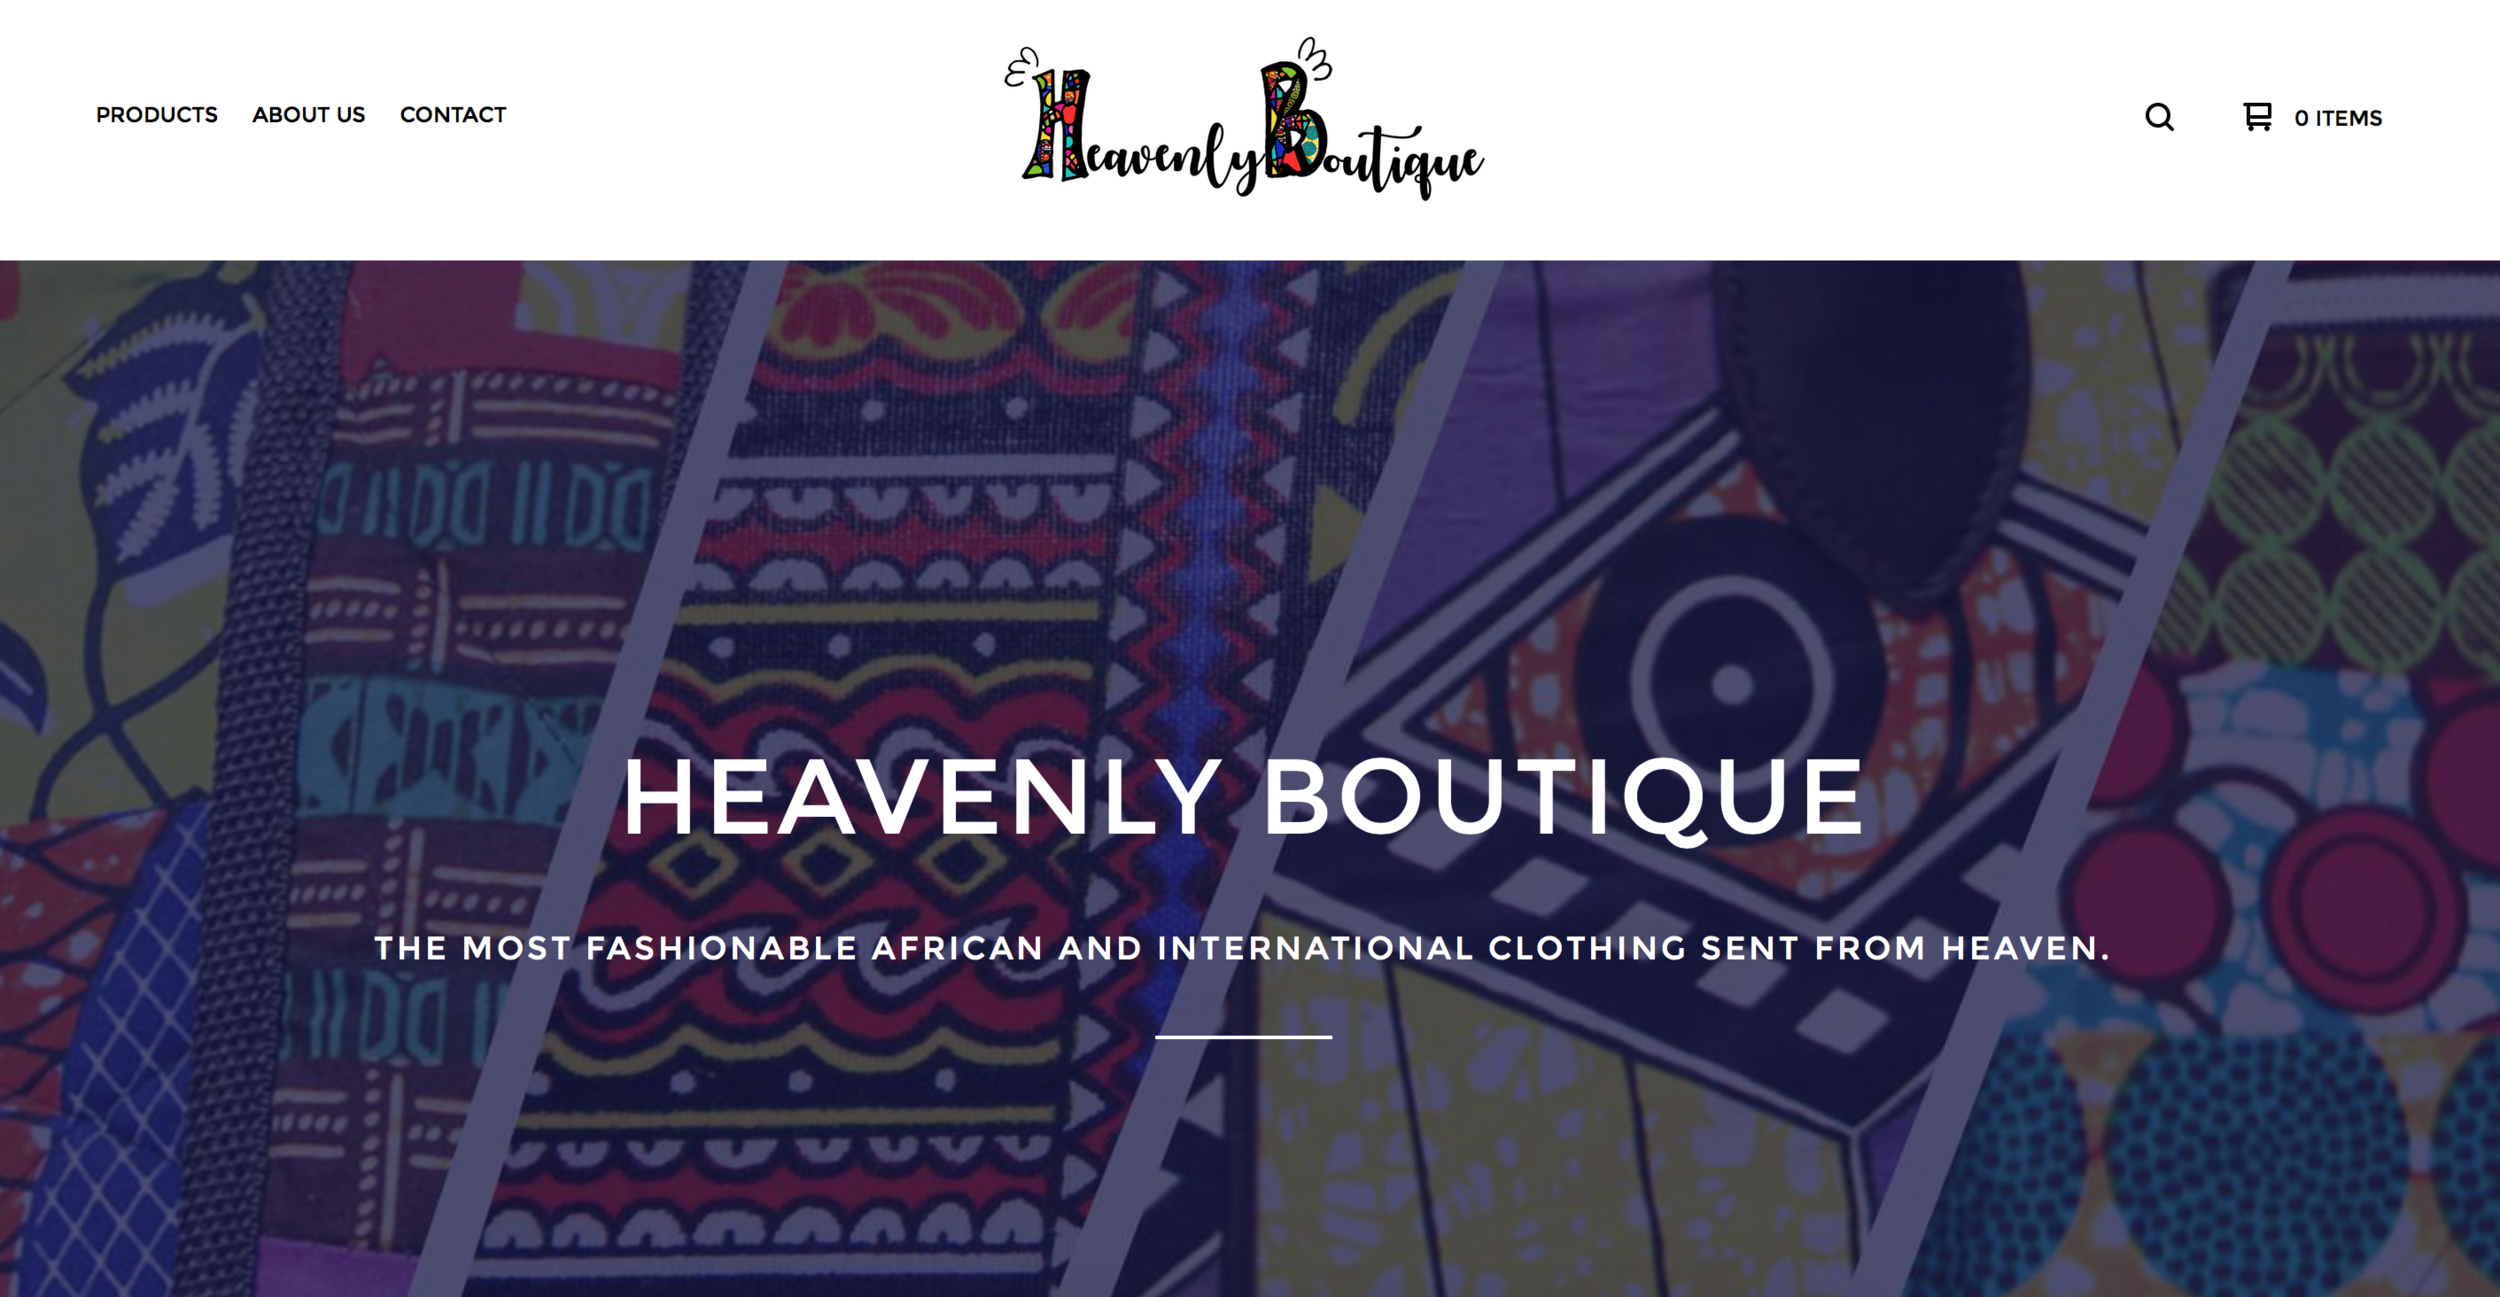 HEAVENLY BOUTIQUE RETAIL